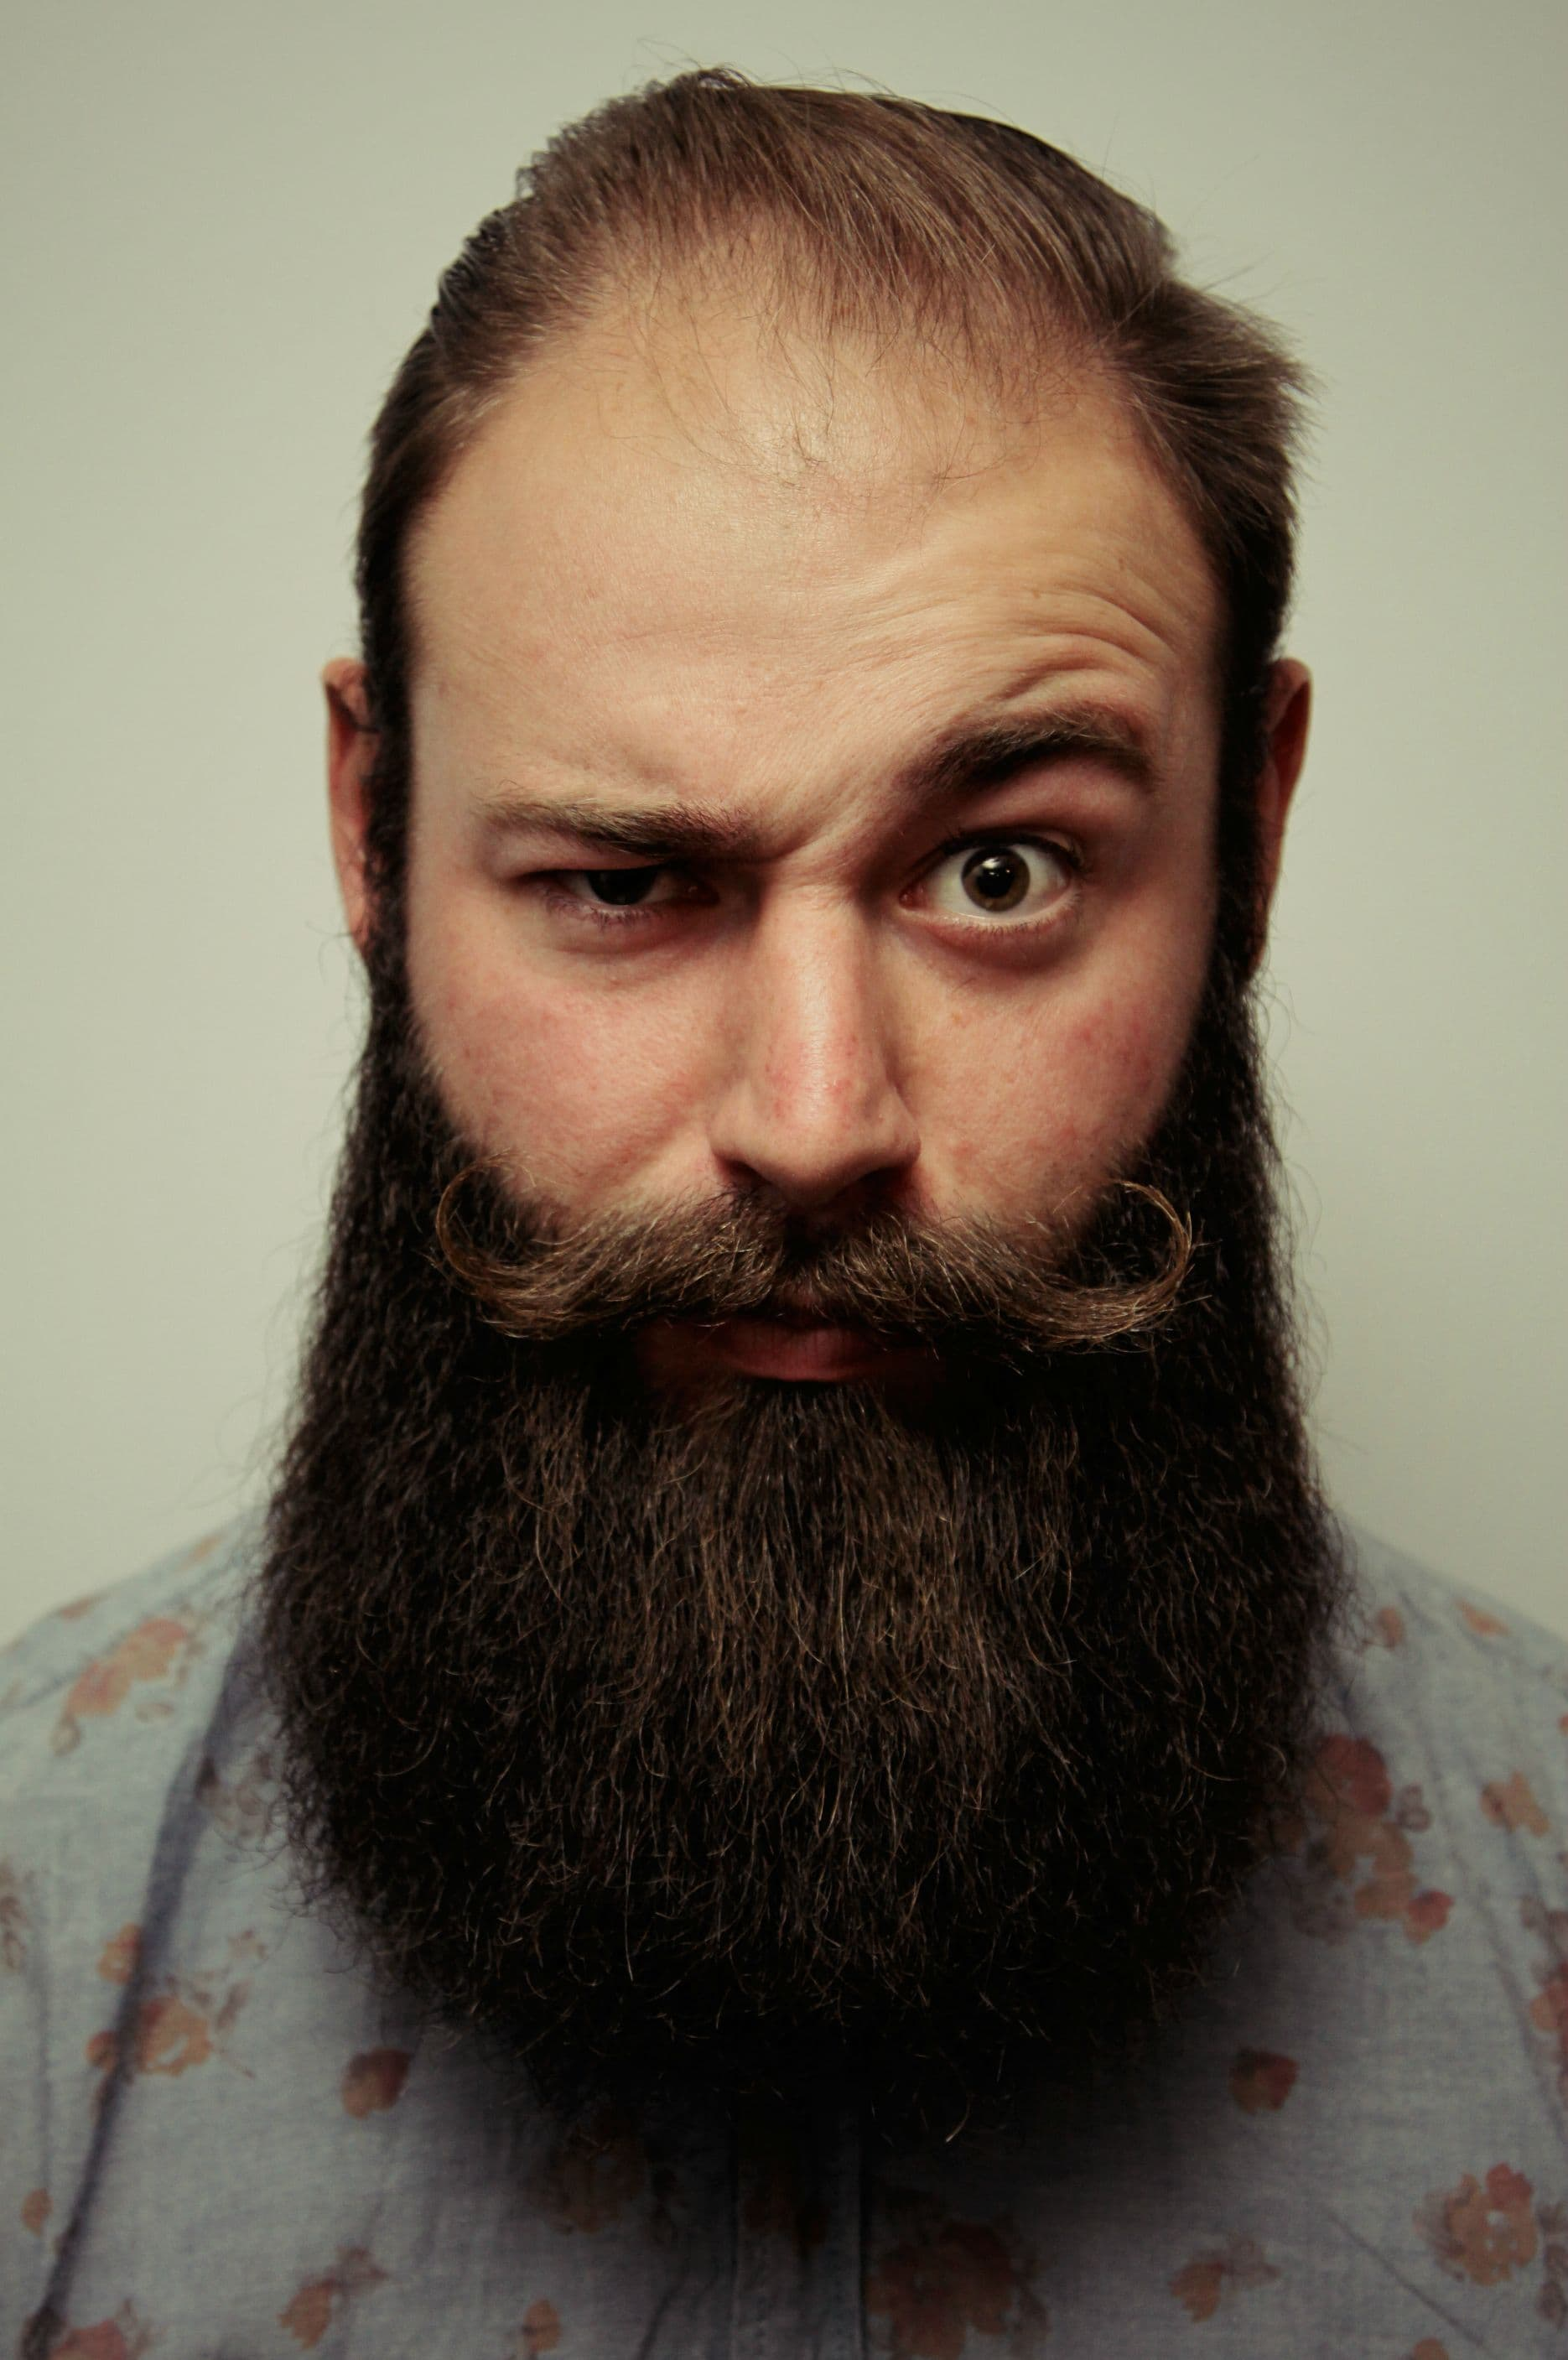 grow beard product photo - 1